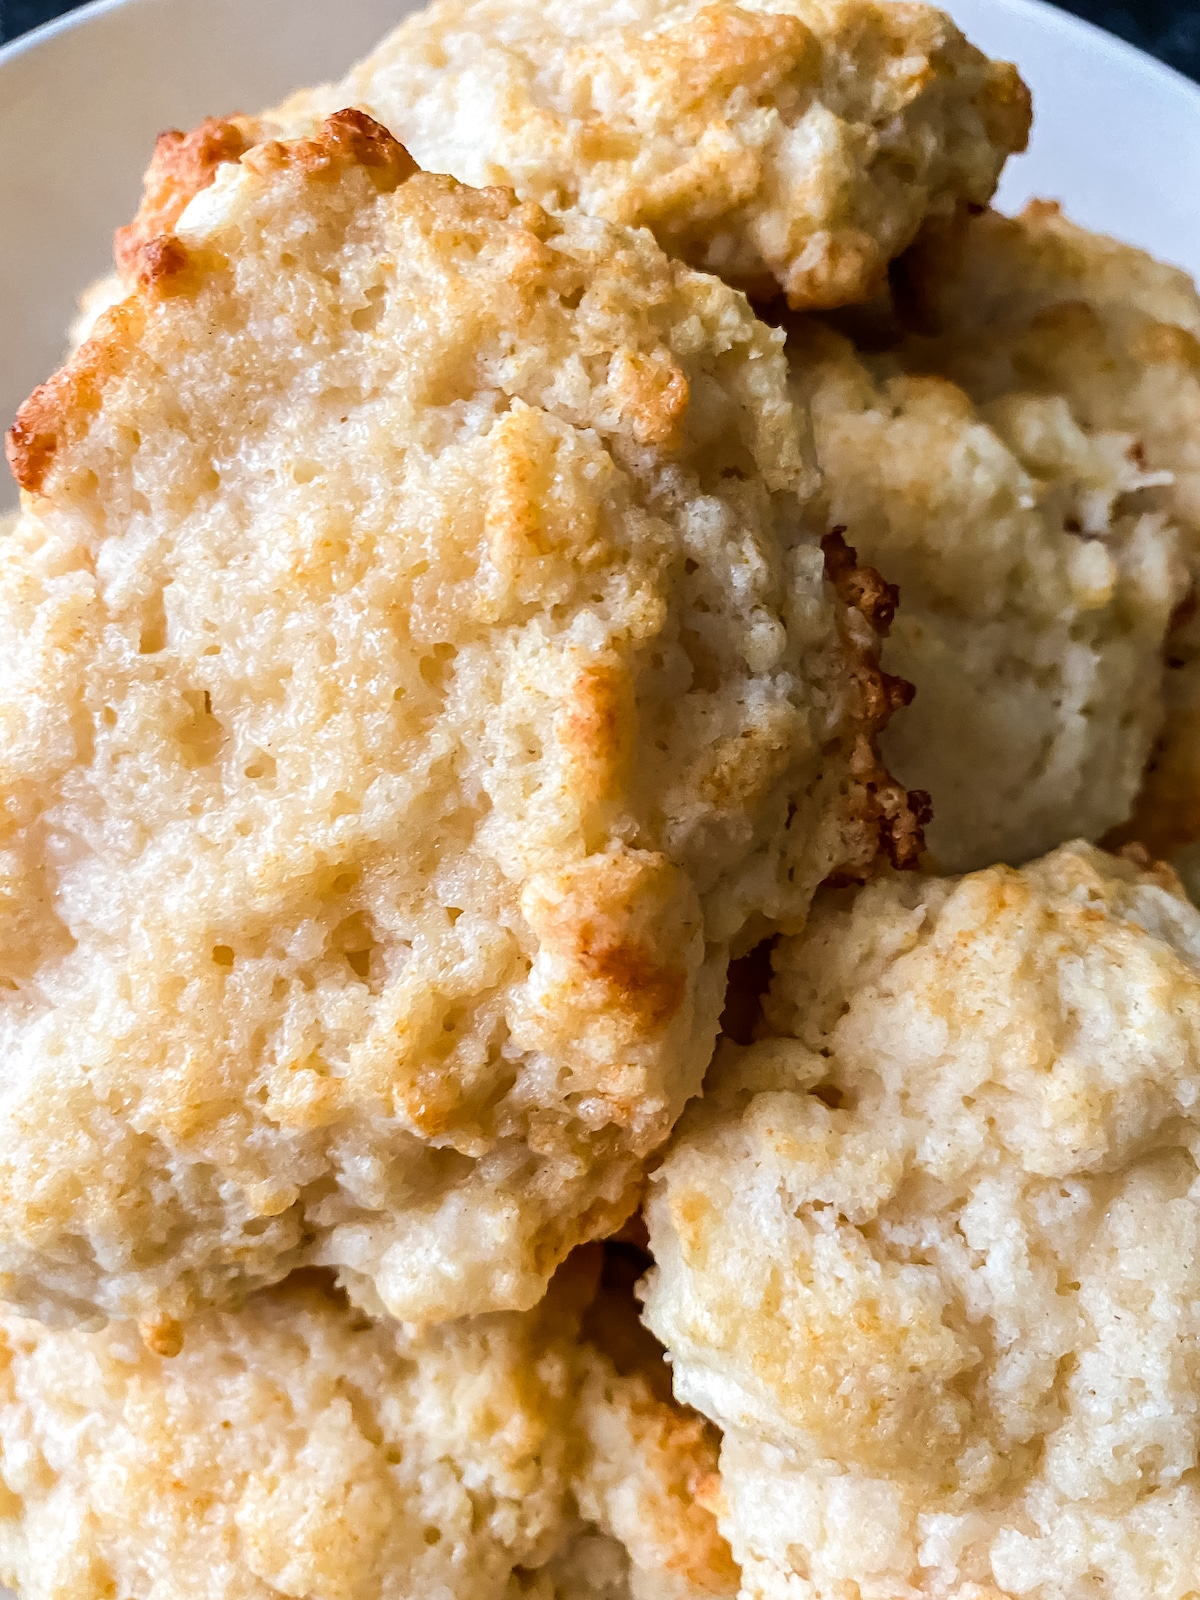 Close up picture of biscuits in bowl